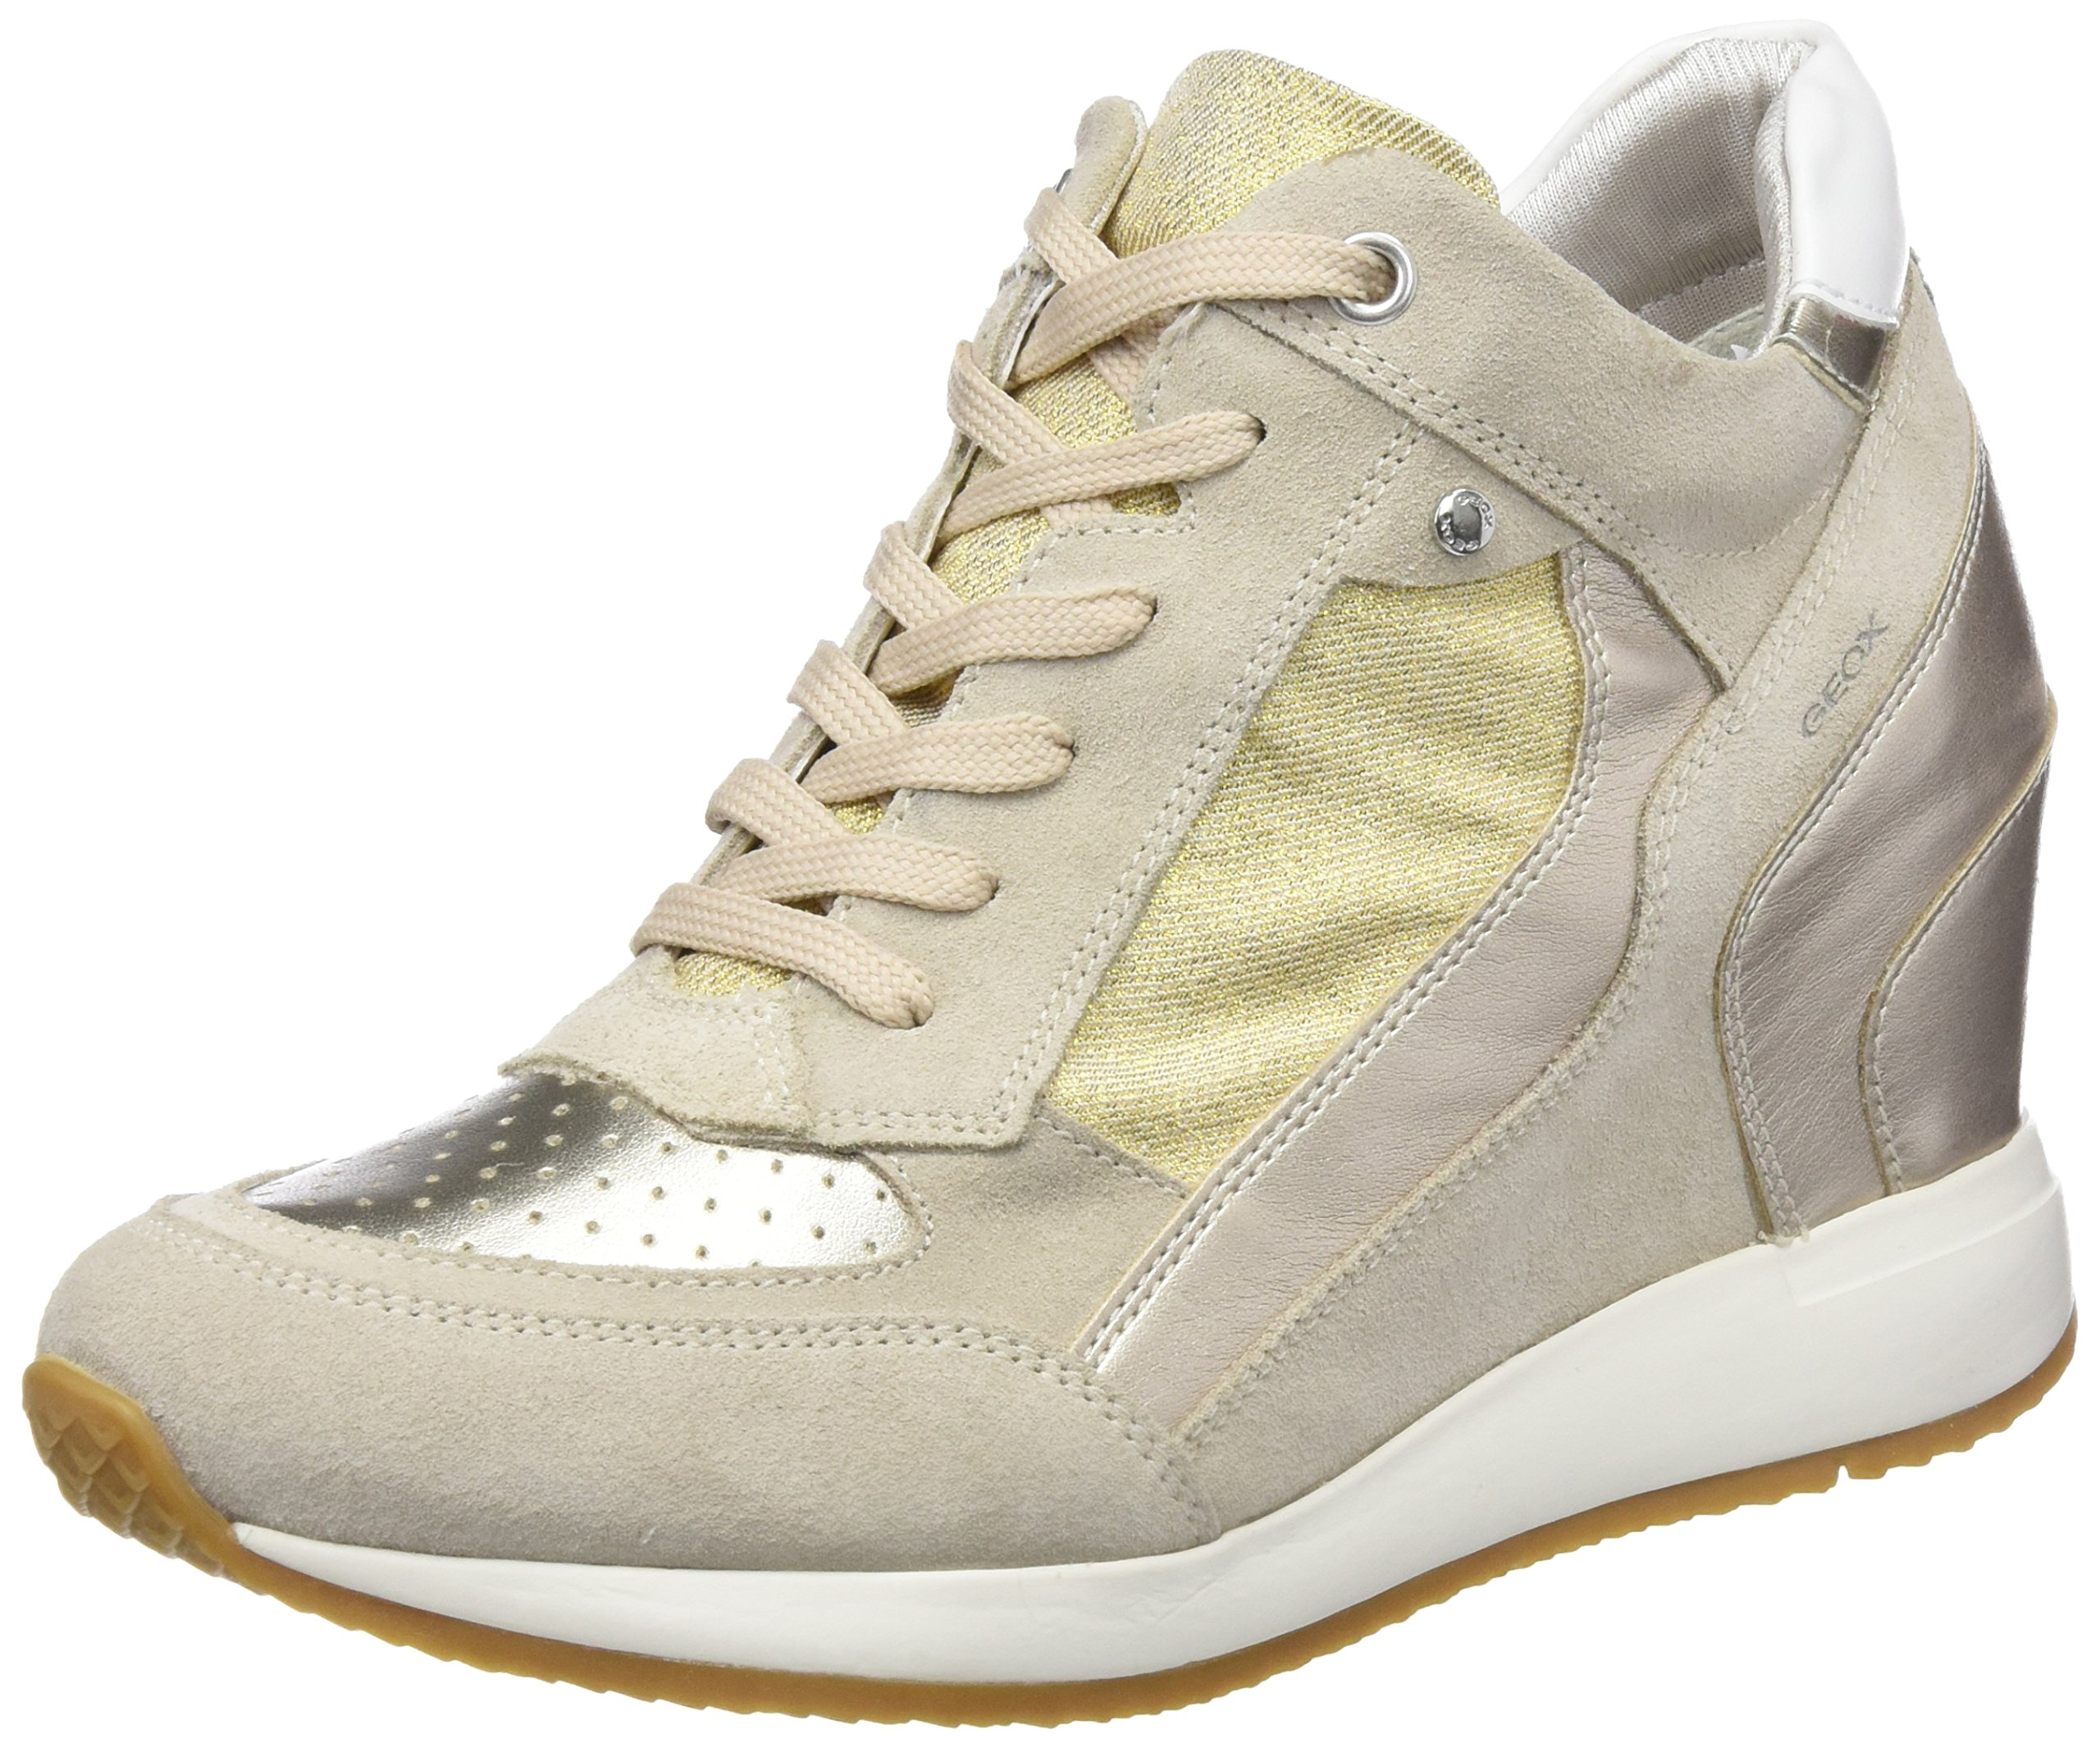 Geox Women's Nydame 6 Sneaker, Light Taupe/Light Gold, 37 M EU (7 US)